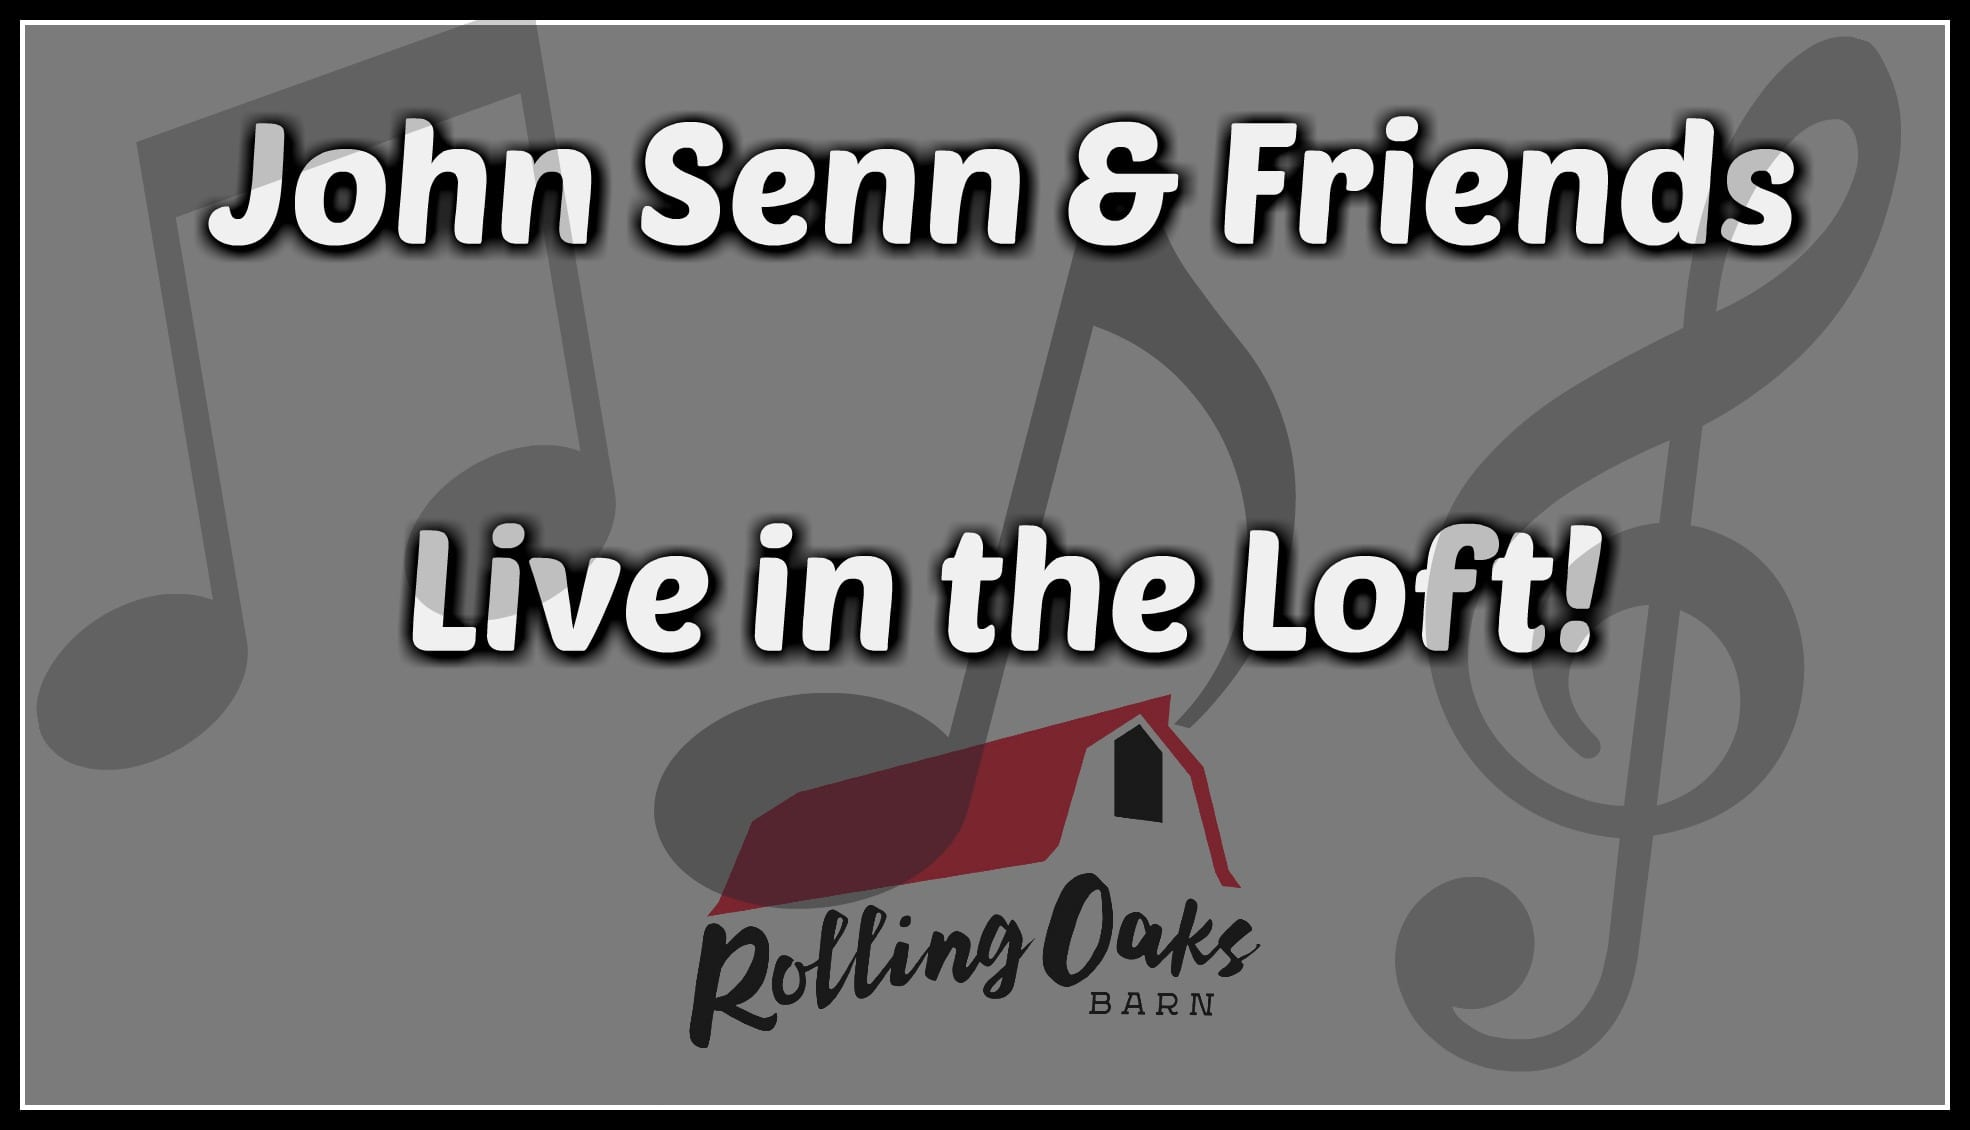 John Senn & Friends Live in the Loft